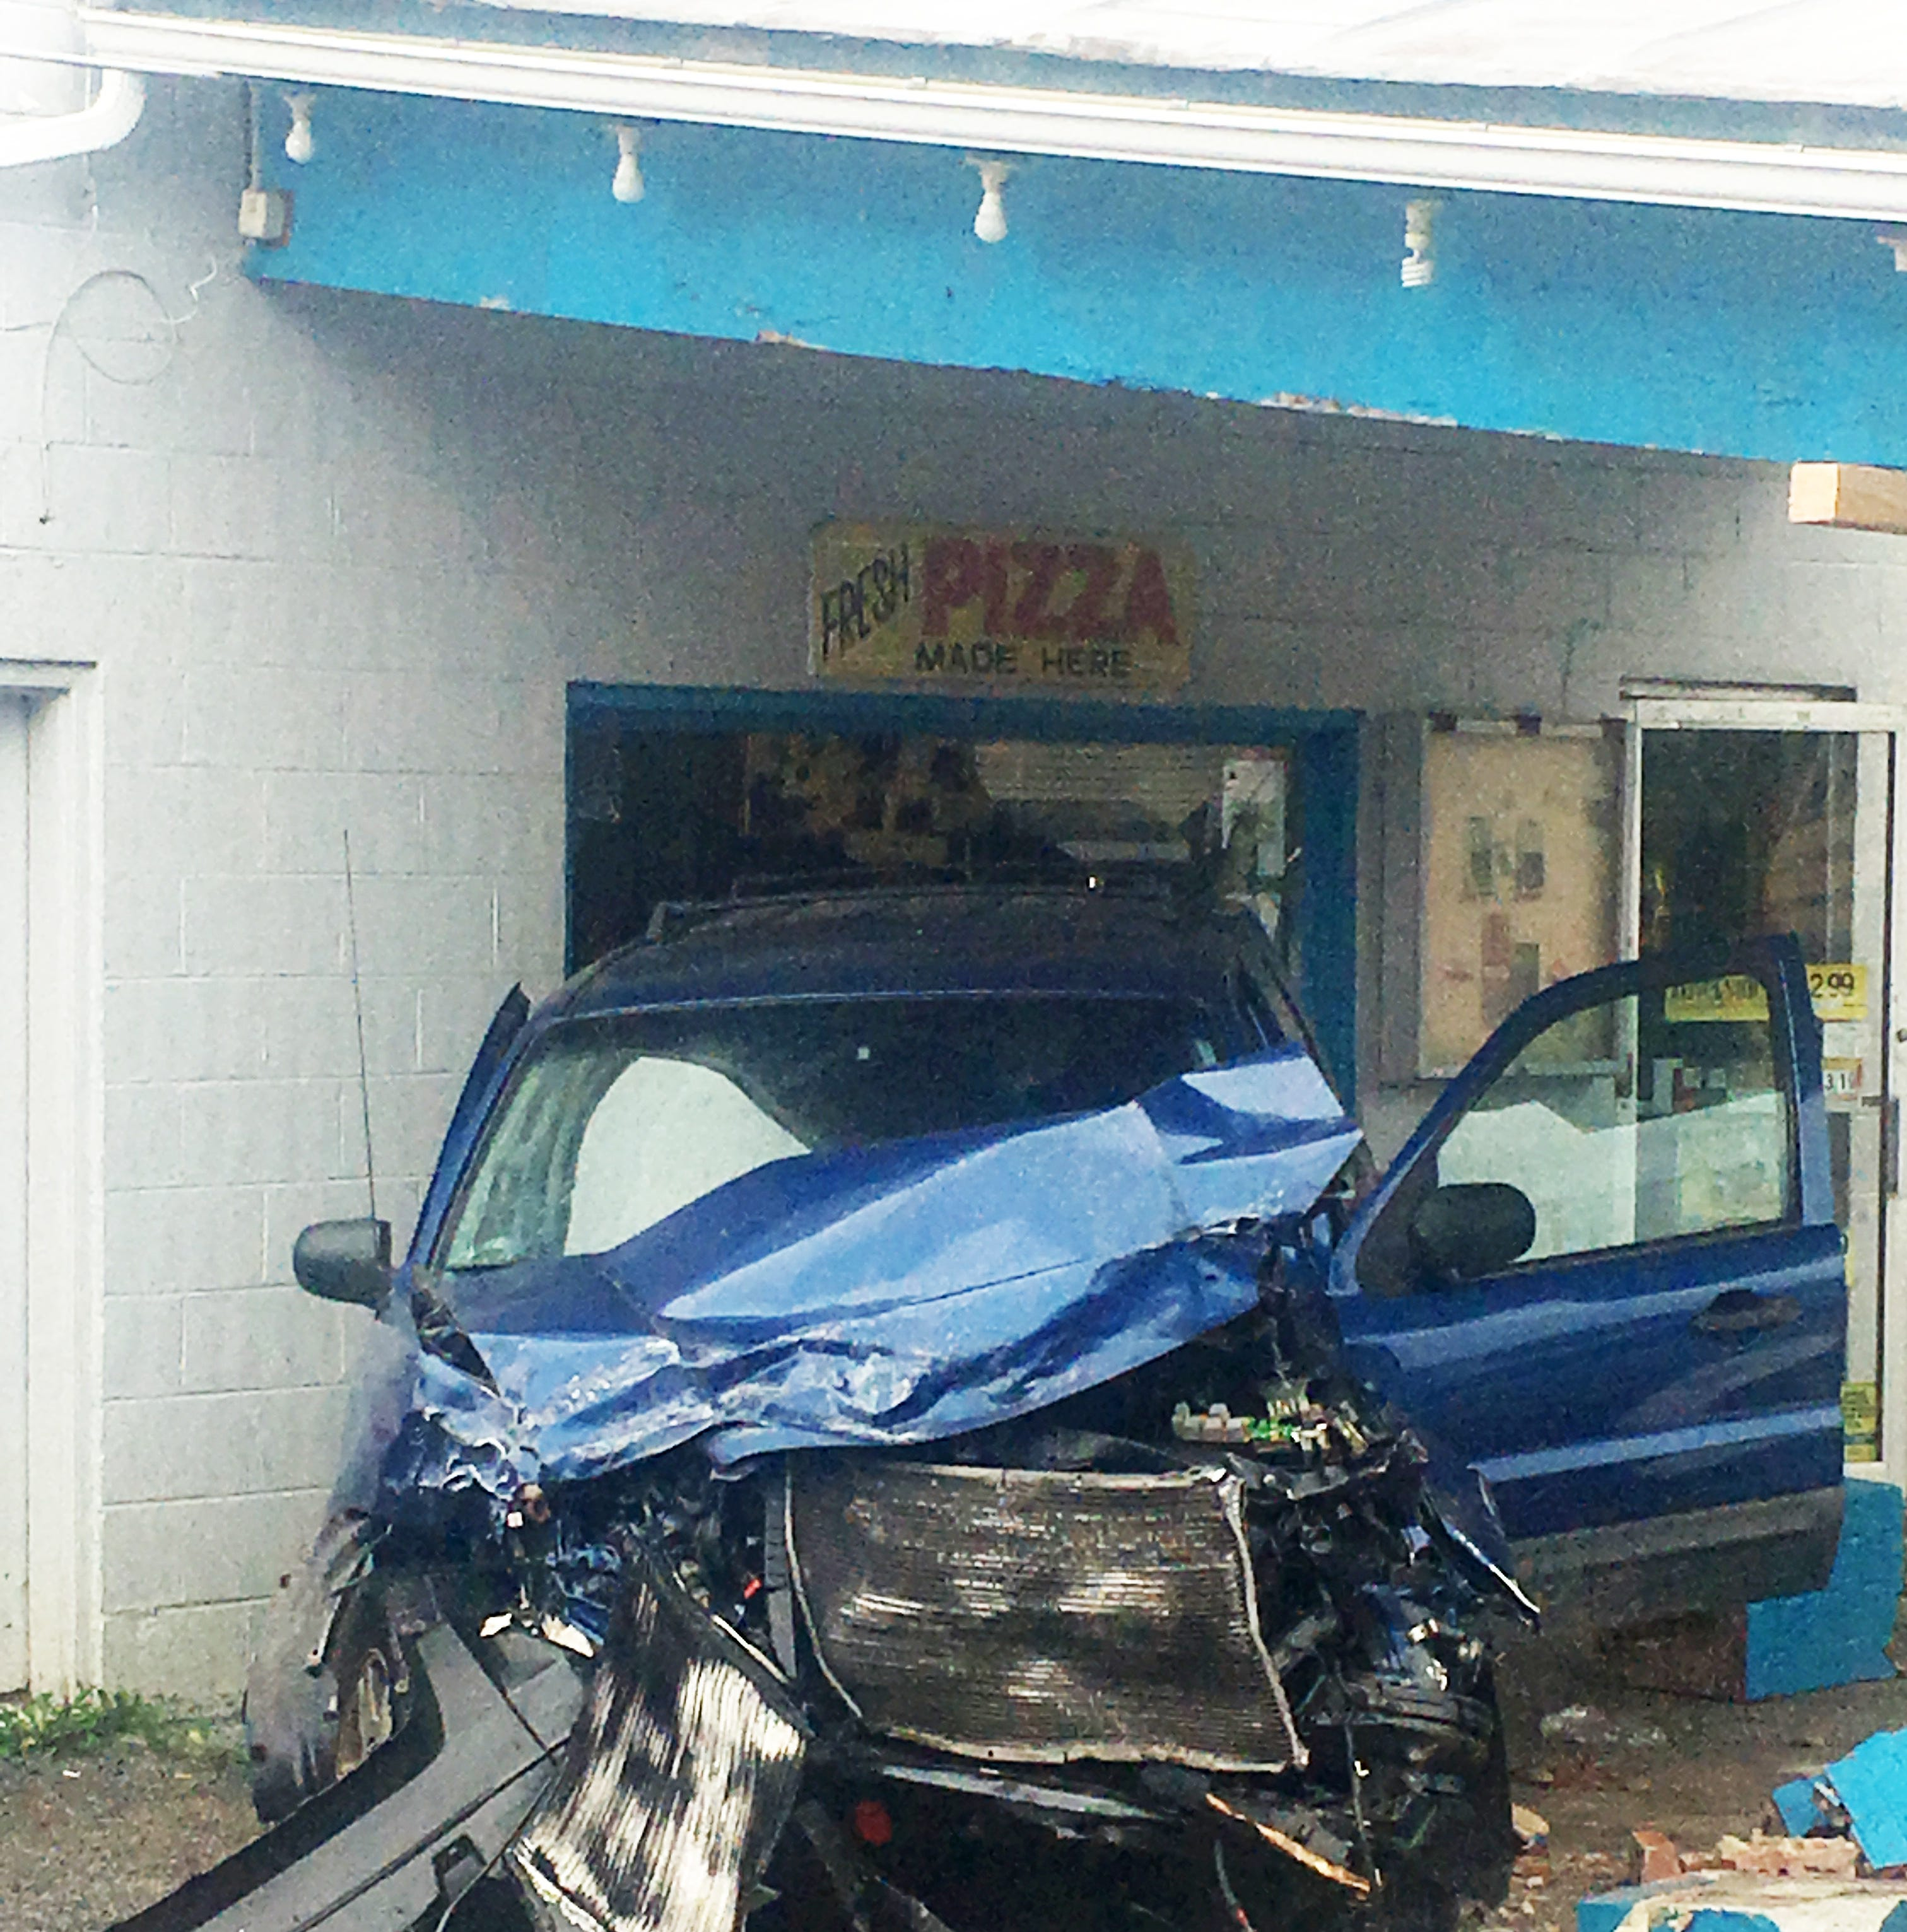 An individual allegedly eluding police caused a two-vehicle crash, damage to New Hope Grocery